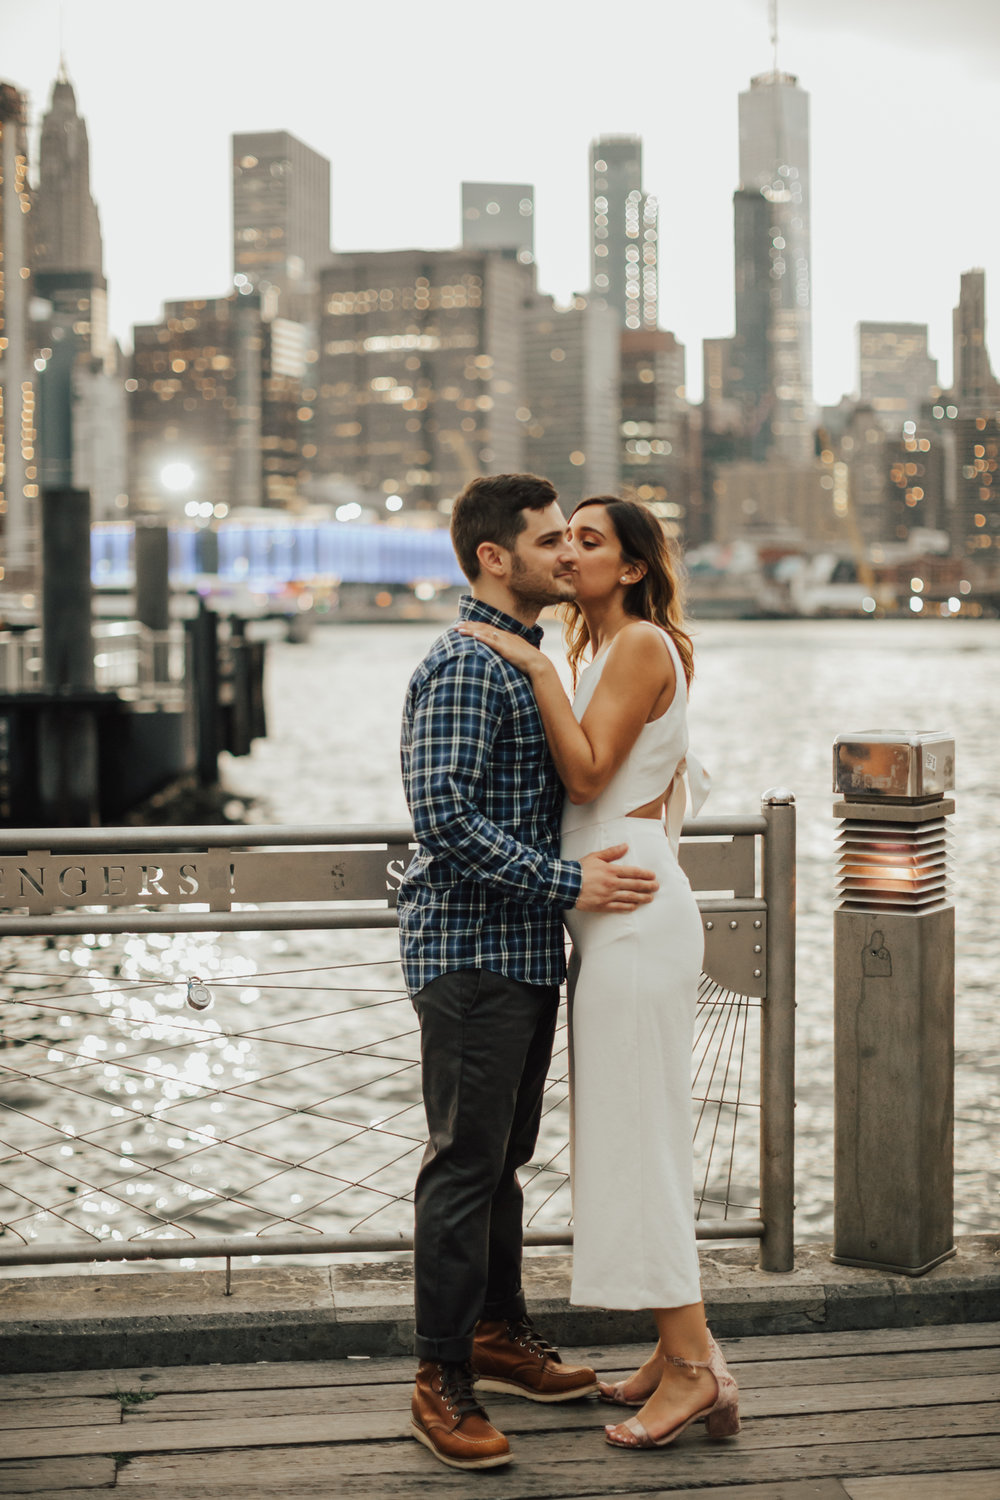 Hipster wedding photography New York